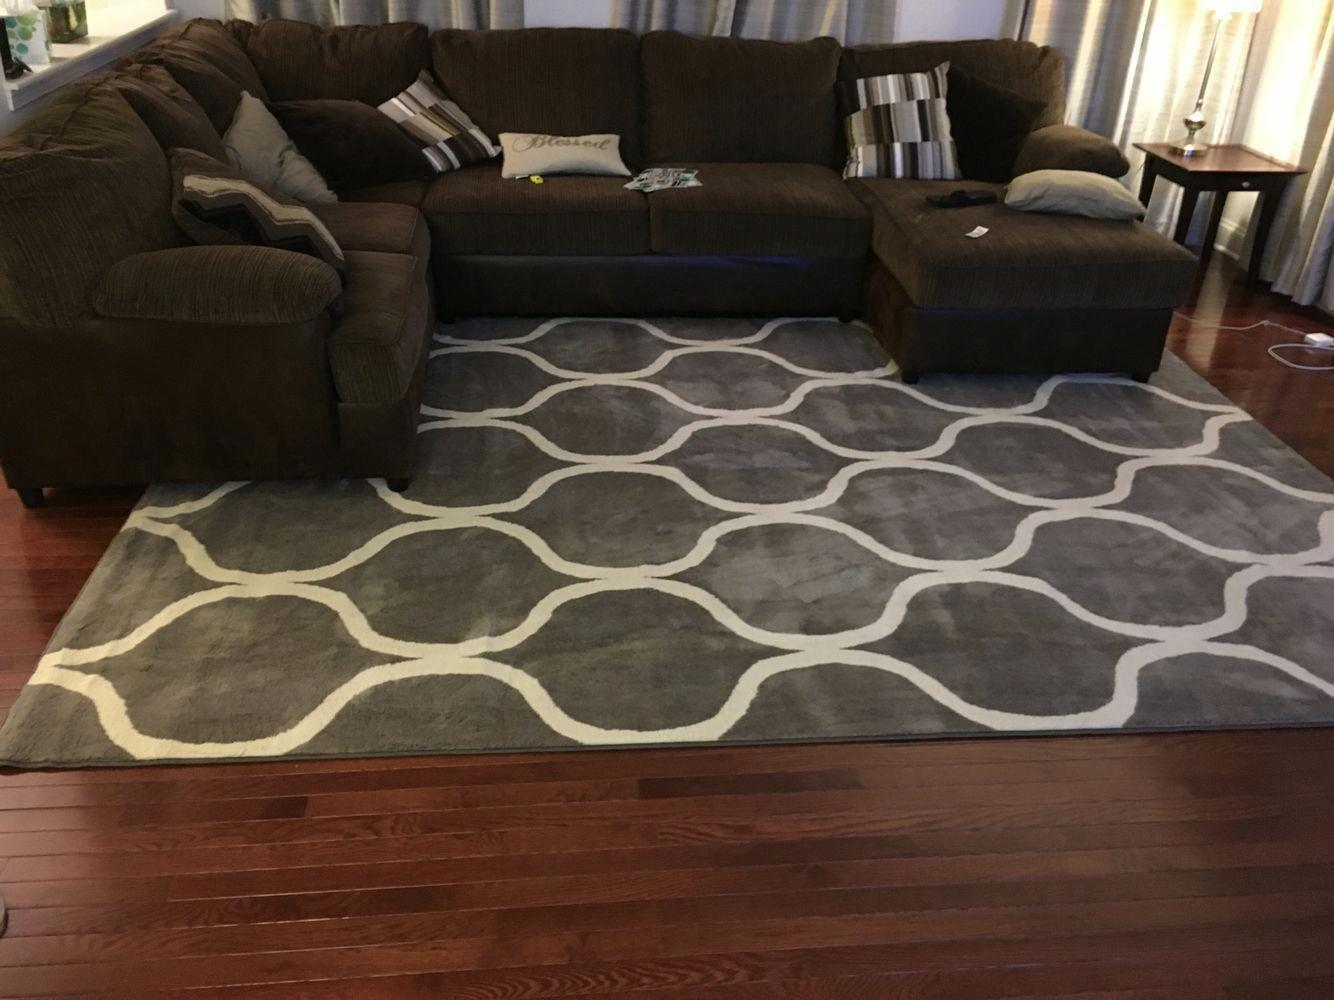 Image result for Accent rugsbrown sofa pinterest